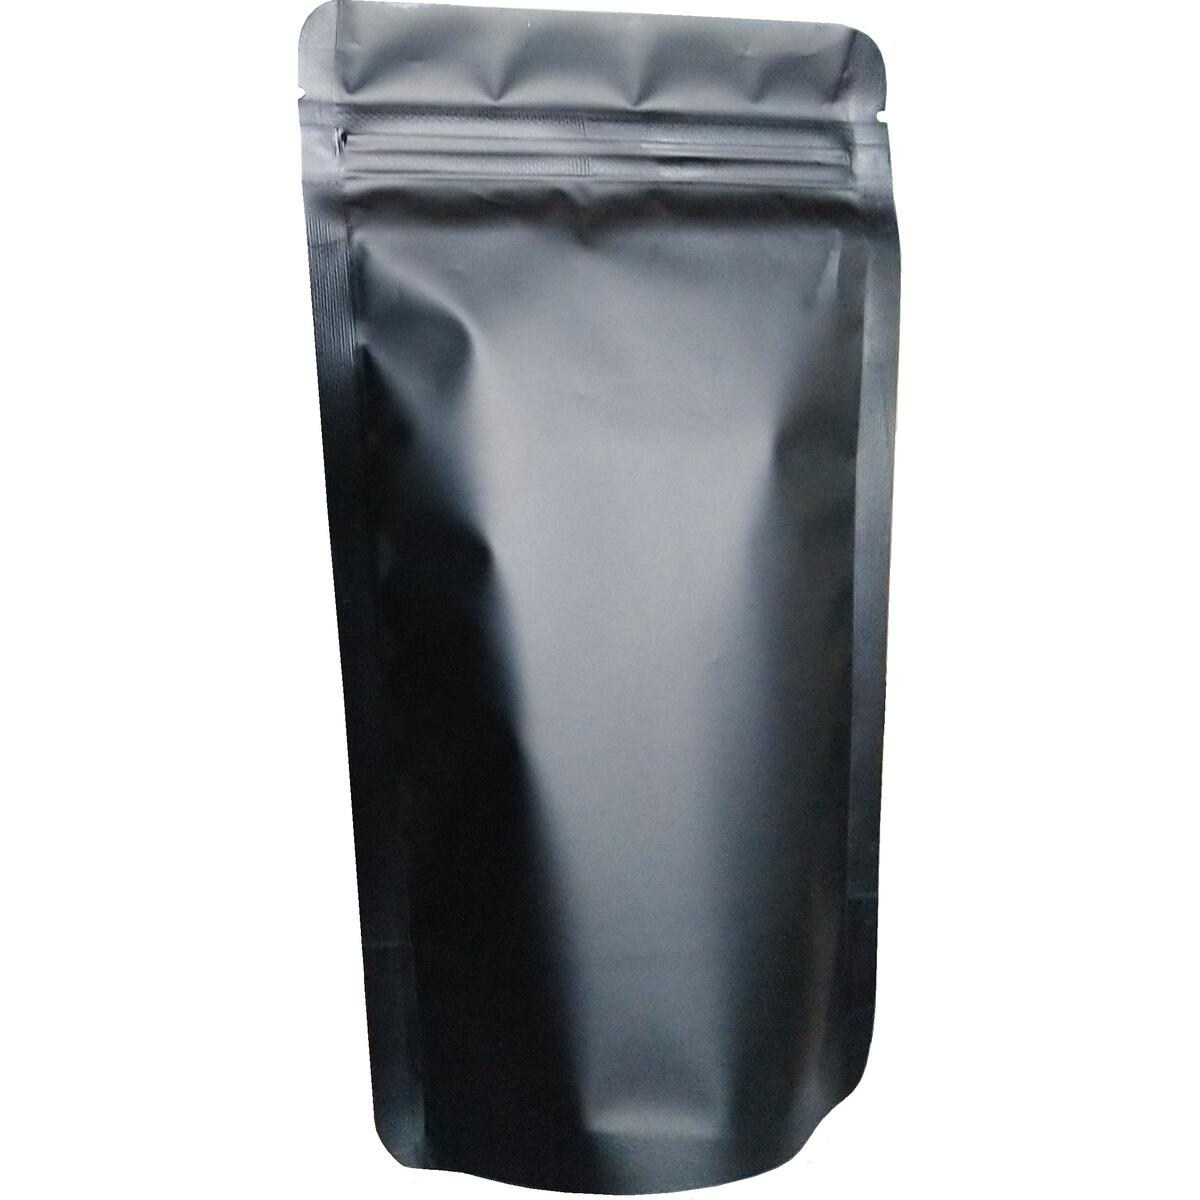 110 Pack Smell Proof Bags Mylar Bags Ziplock Stand Up 100 Pack 425ml (5X8 Inch) Plus 10 Pack 2400ml (8.5X11.5 Inch) Resealable Matte Black Airtight Zipper Pouches